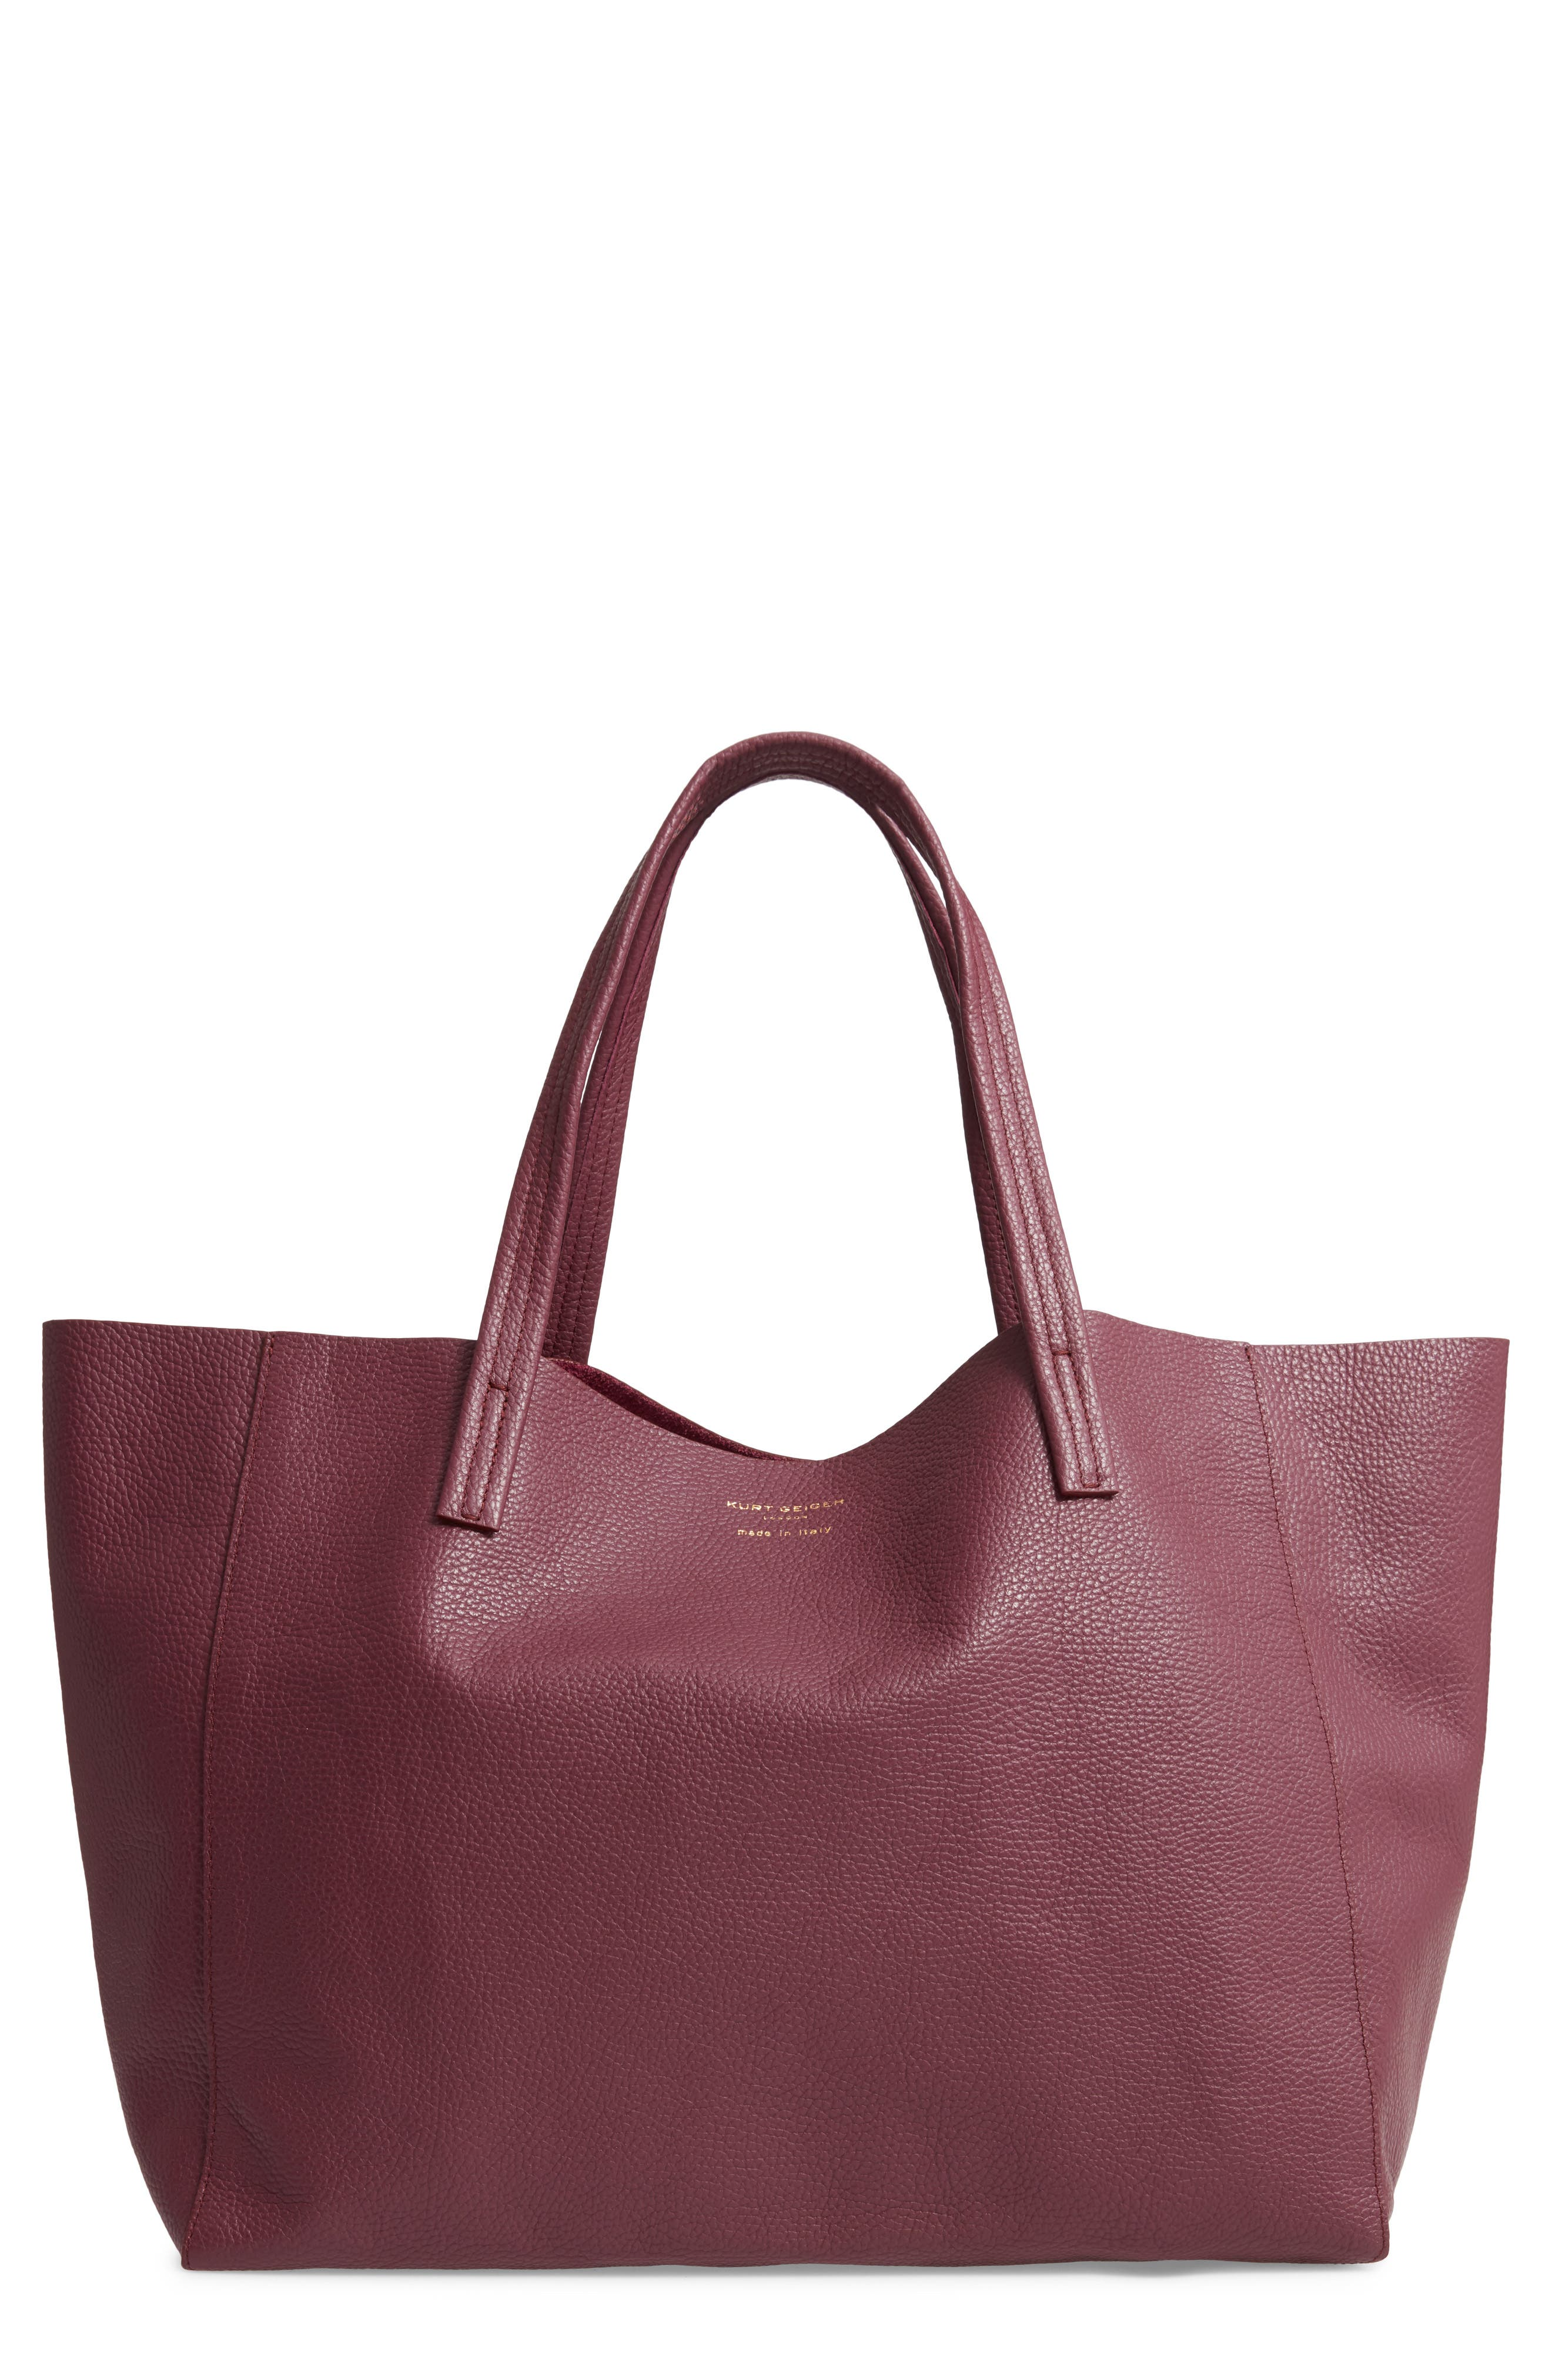 Violet Leather Tote,                             Main thumbnail 1, color,                             RED/ OTHER